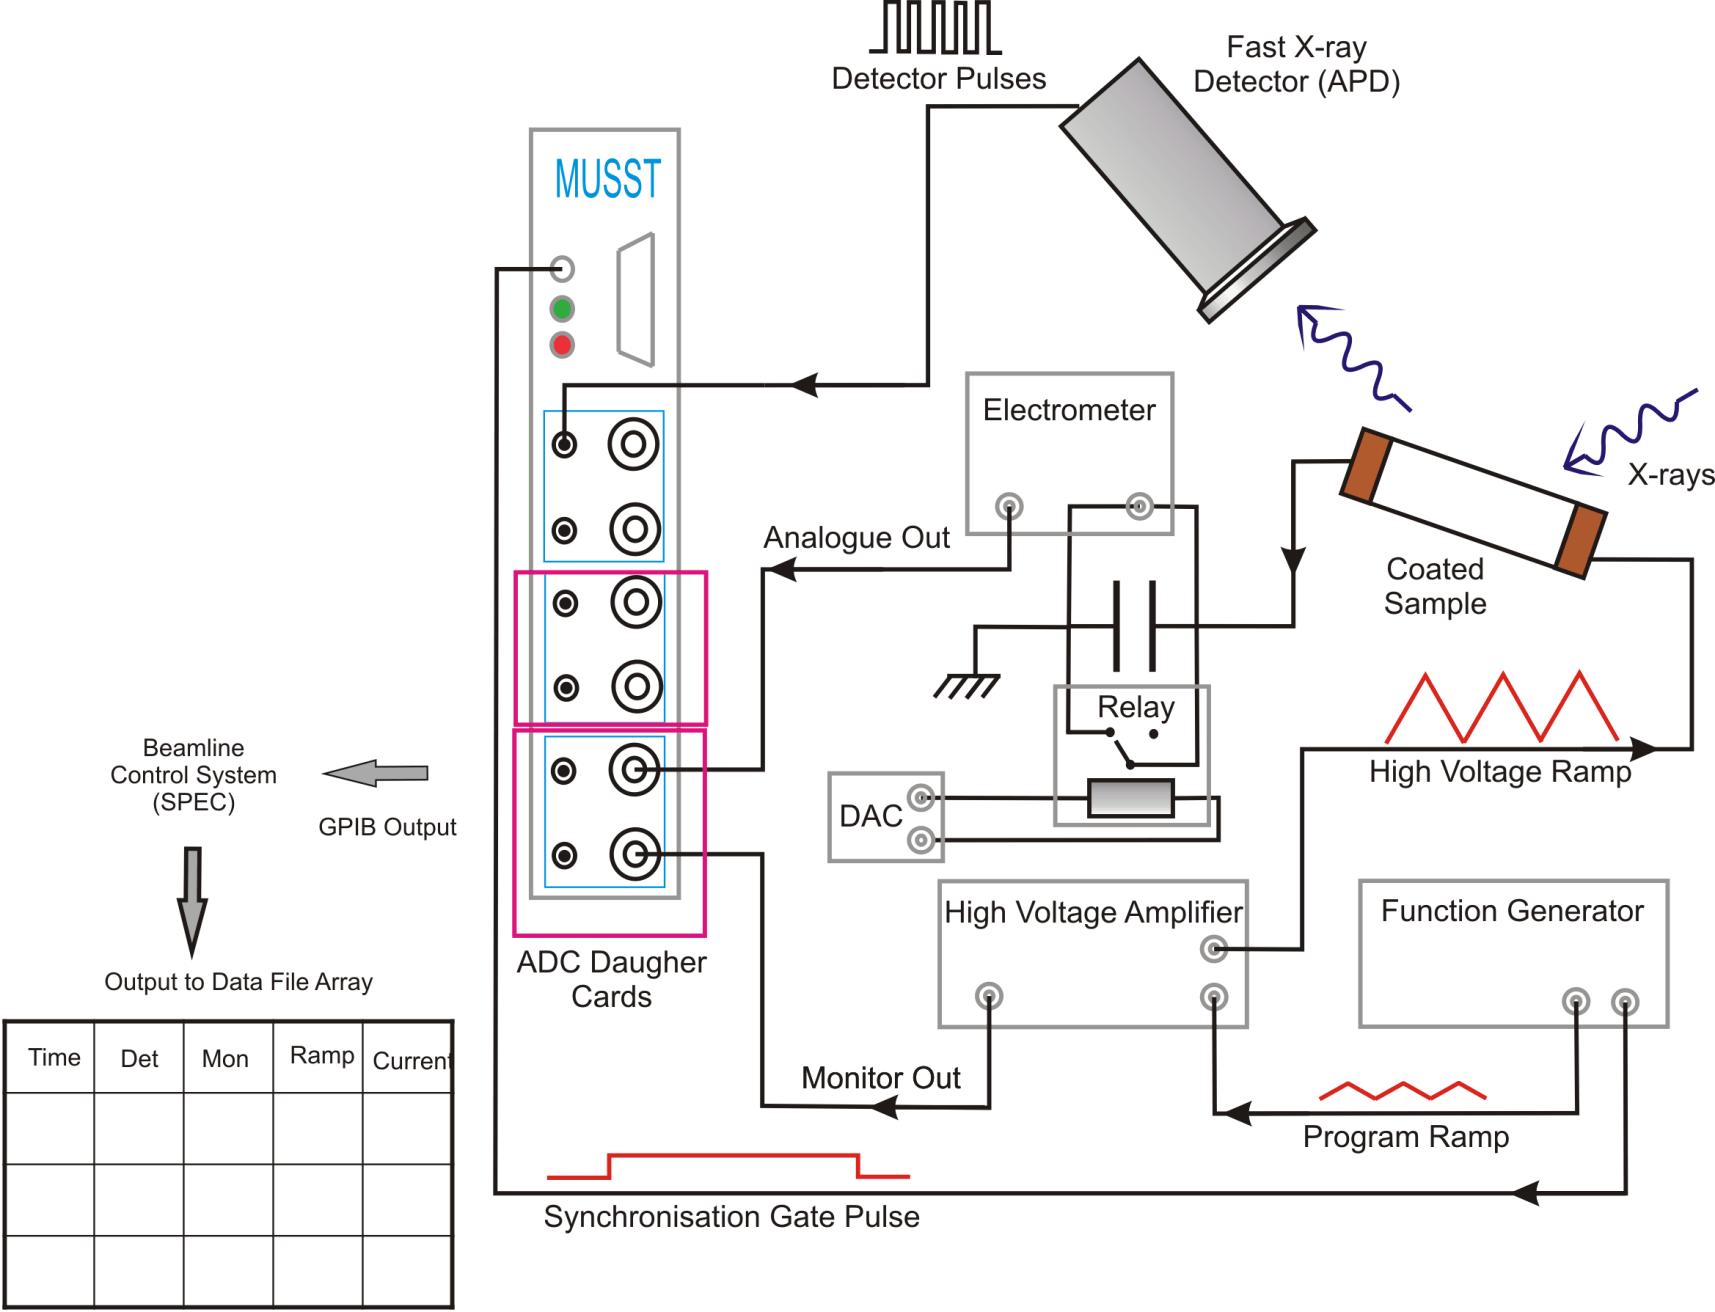 hight resolution of schematic setup of the xmas pe loop system the musst card is essentially an x y recorder and is synchronized with the signal generator note that the x ray